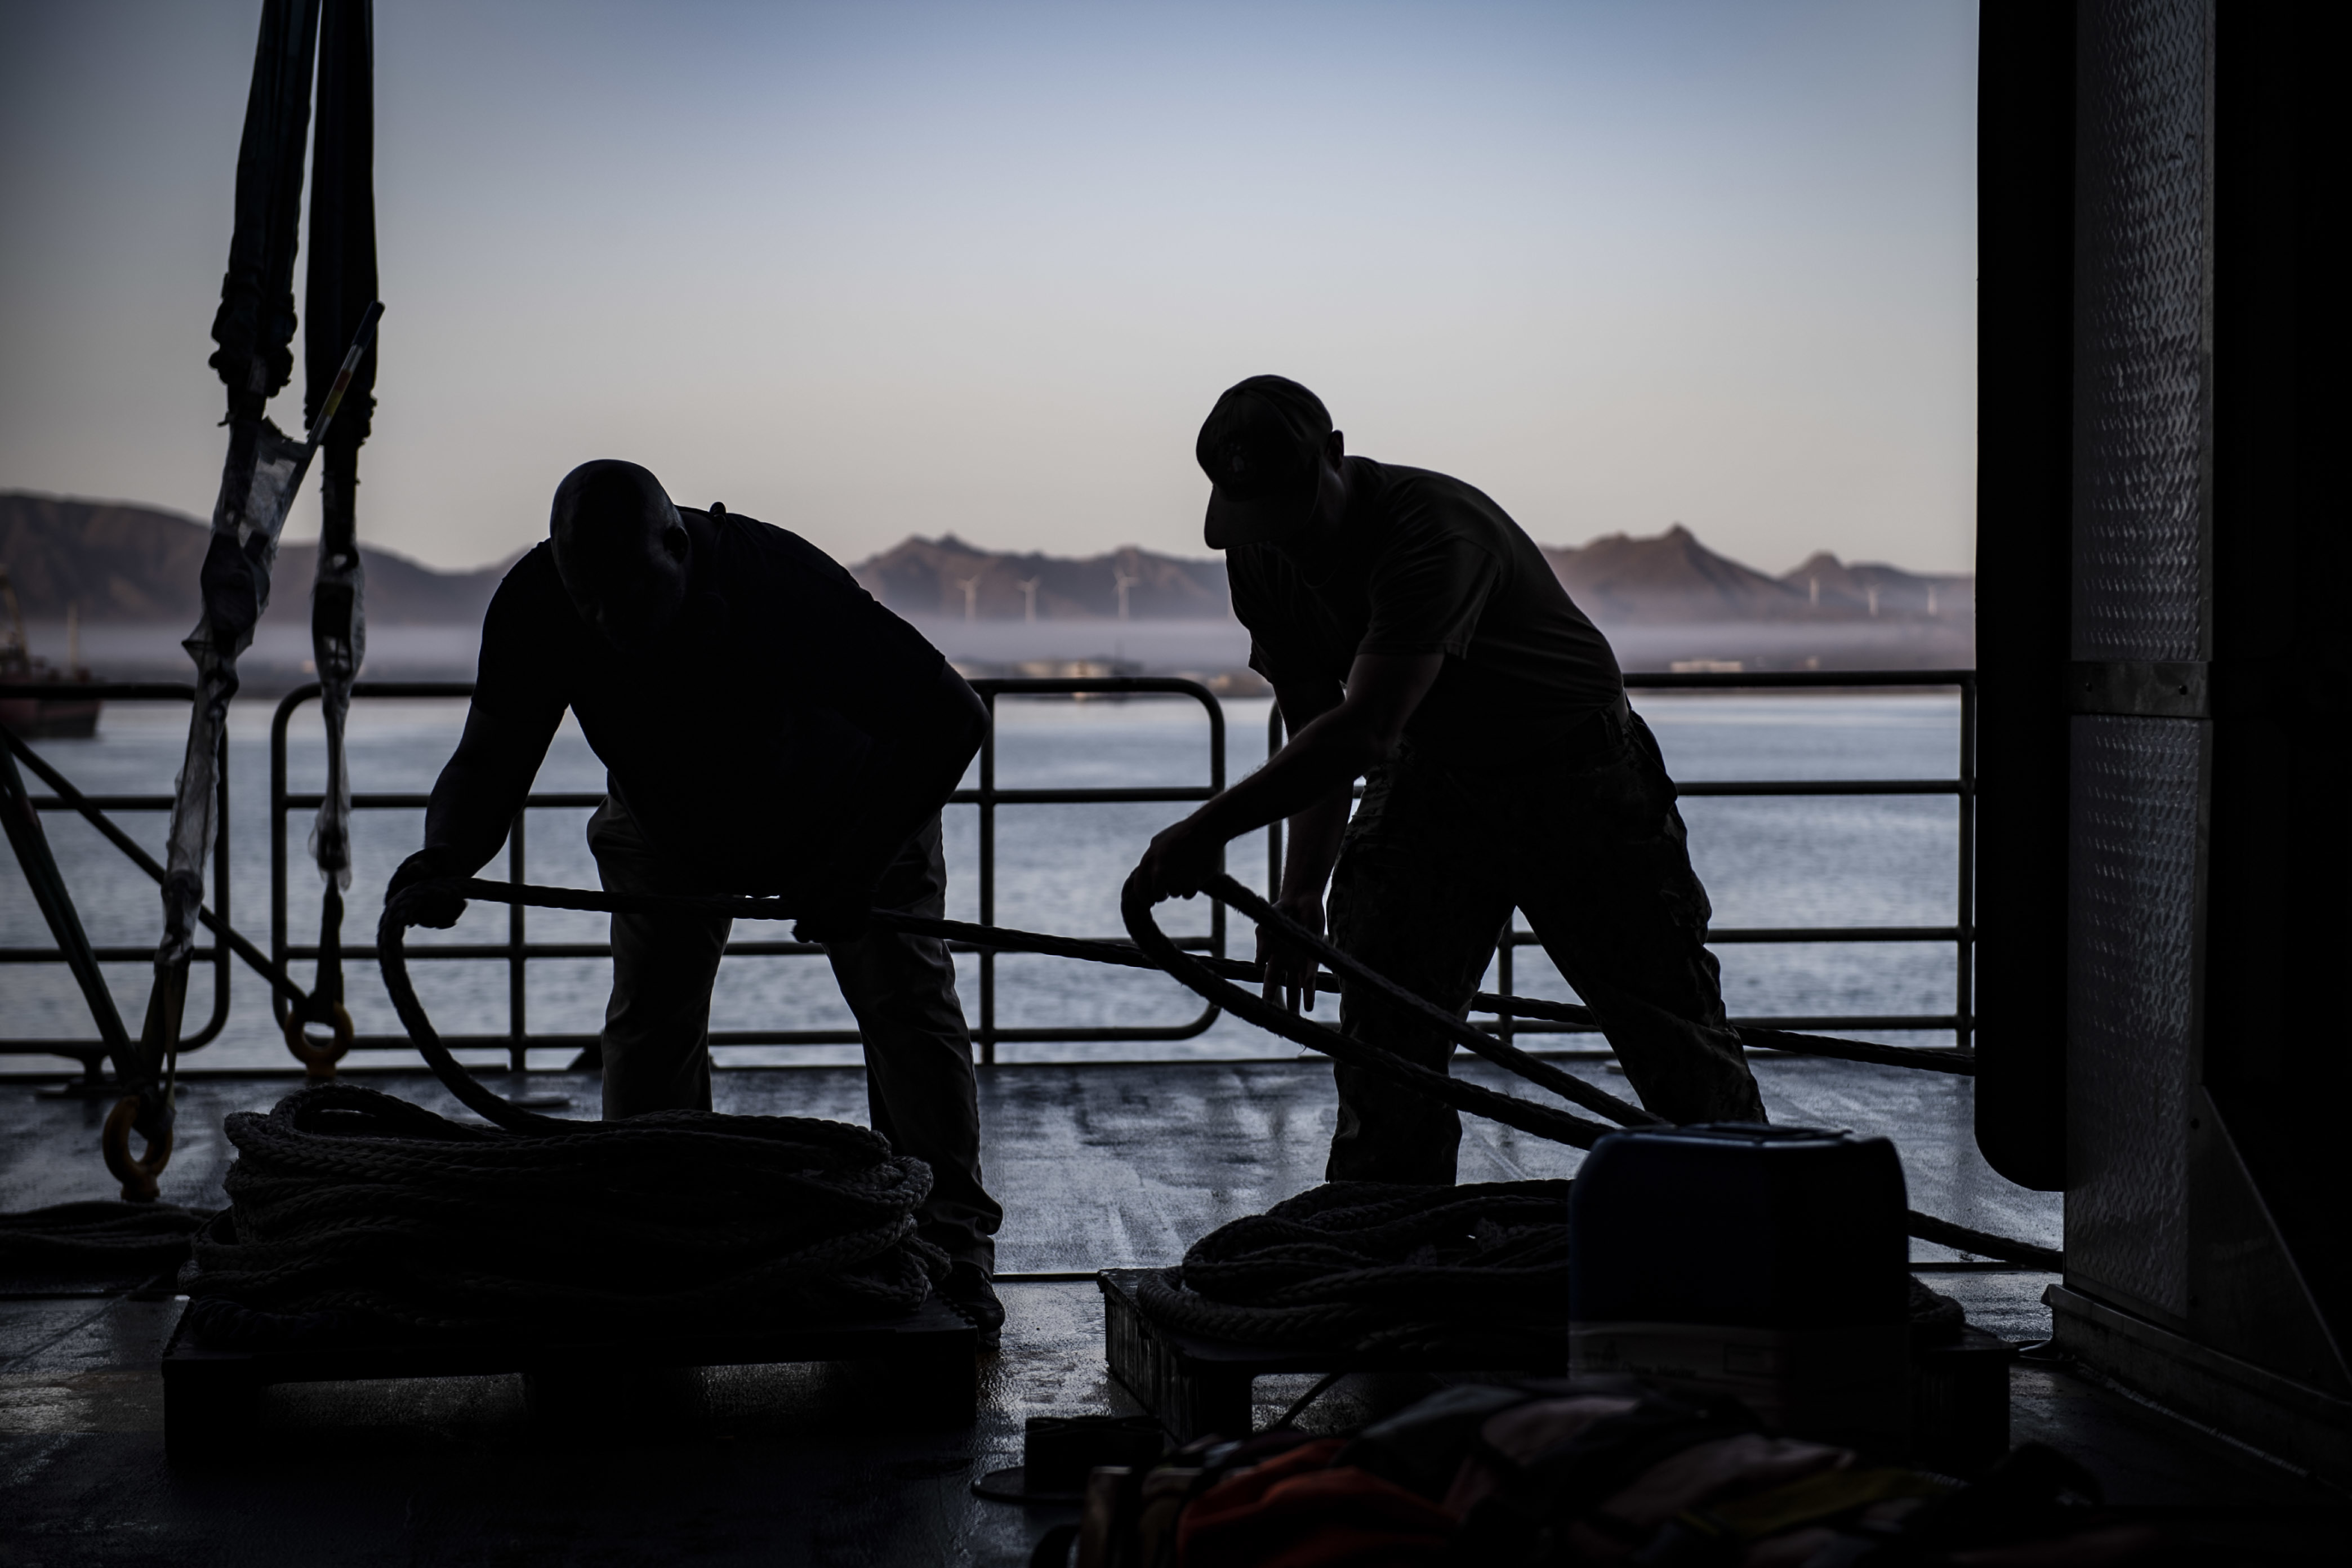 190810-N-JI086-0038 MINDELO, Cabo Verde (Aug. 10, 2019) A Sailor and Civil Service mariner heave line as the expeditionary fast transport ship USNS Carson City (T-EPF 7) departs Mindelo, Cabo Verde, Aug. 10, 2019. Carson City is deployed to the Gulf of Guinea to demonstrate progress through partnerships and U.S. commitment to West African countries through small boat maintenance assistance, maritime law enforcement engagement, and medical and community relations outreach. (U.S. Navy photo by Mass Communication Specialist 2nd Class Ford Williams/Released)